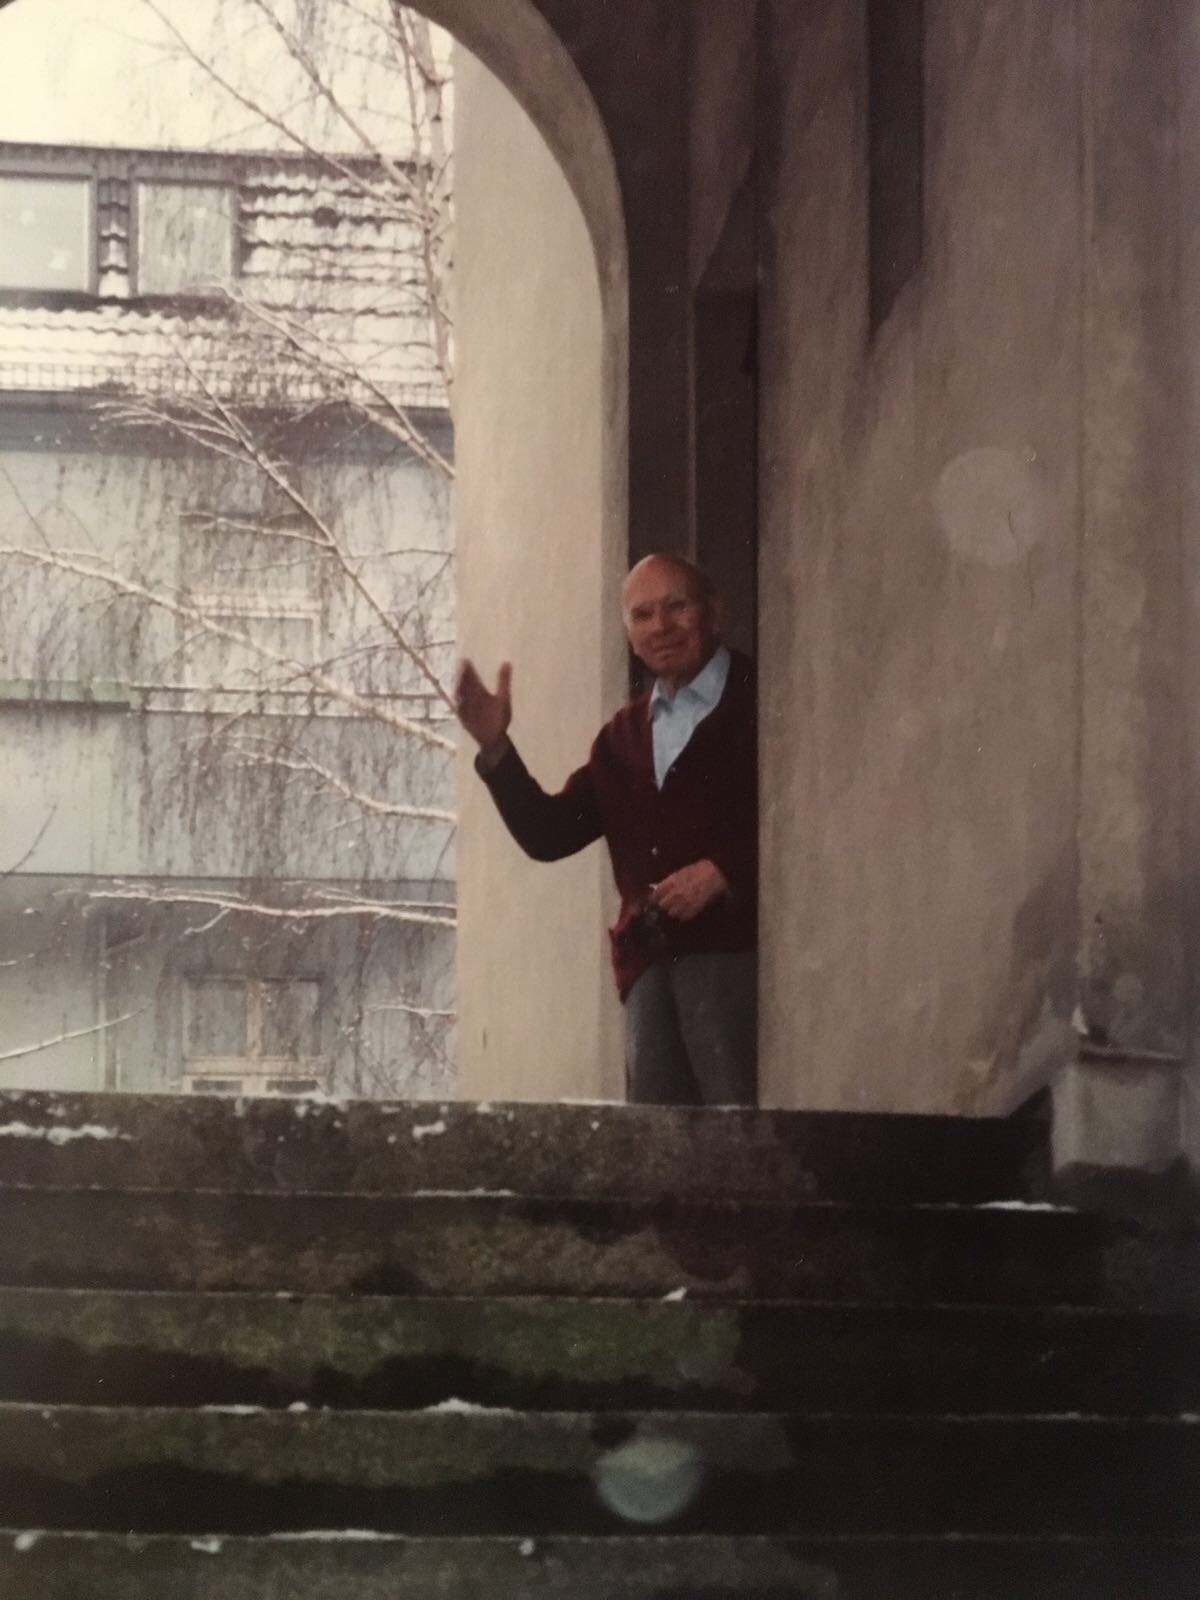 Uropa waving to us from his hallway - this is how I remember him - jolly and kind.